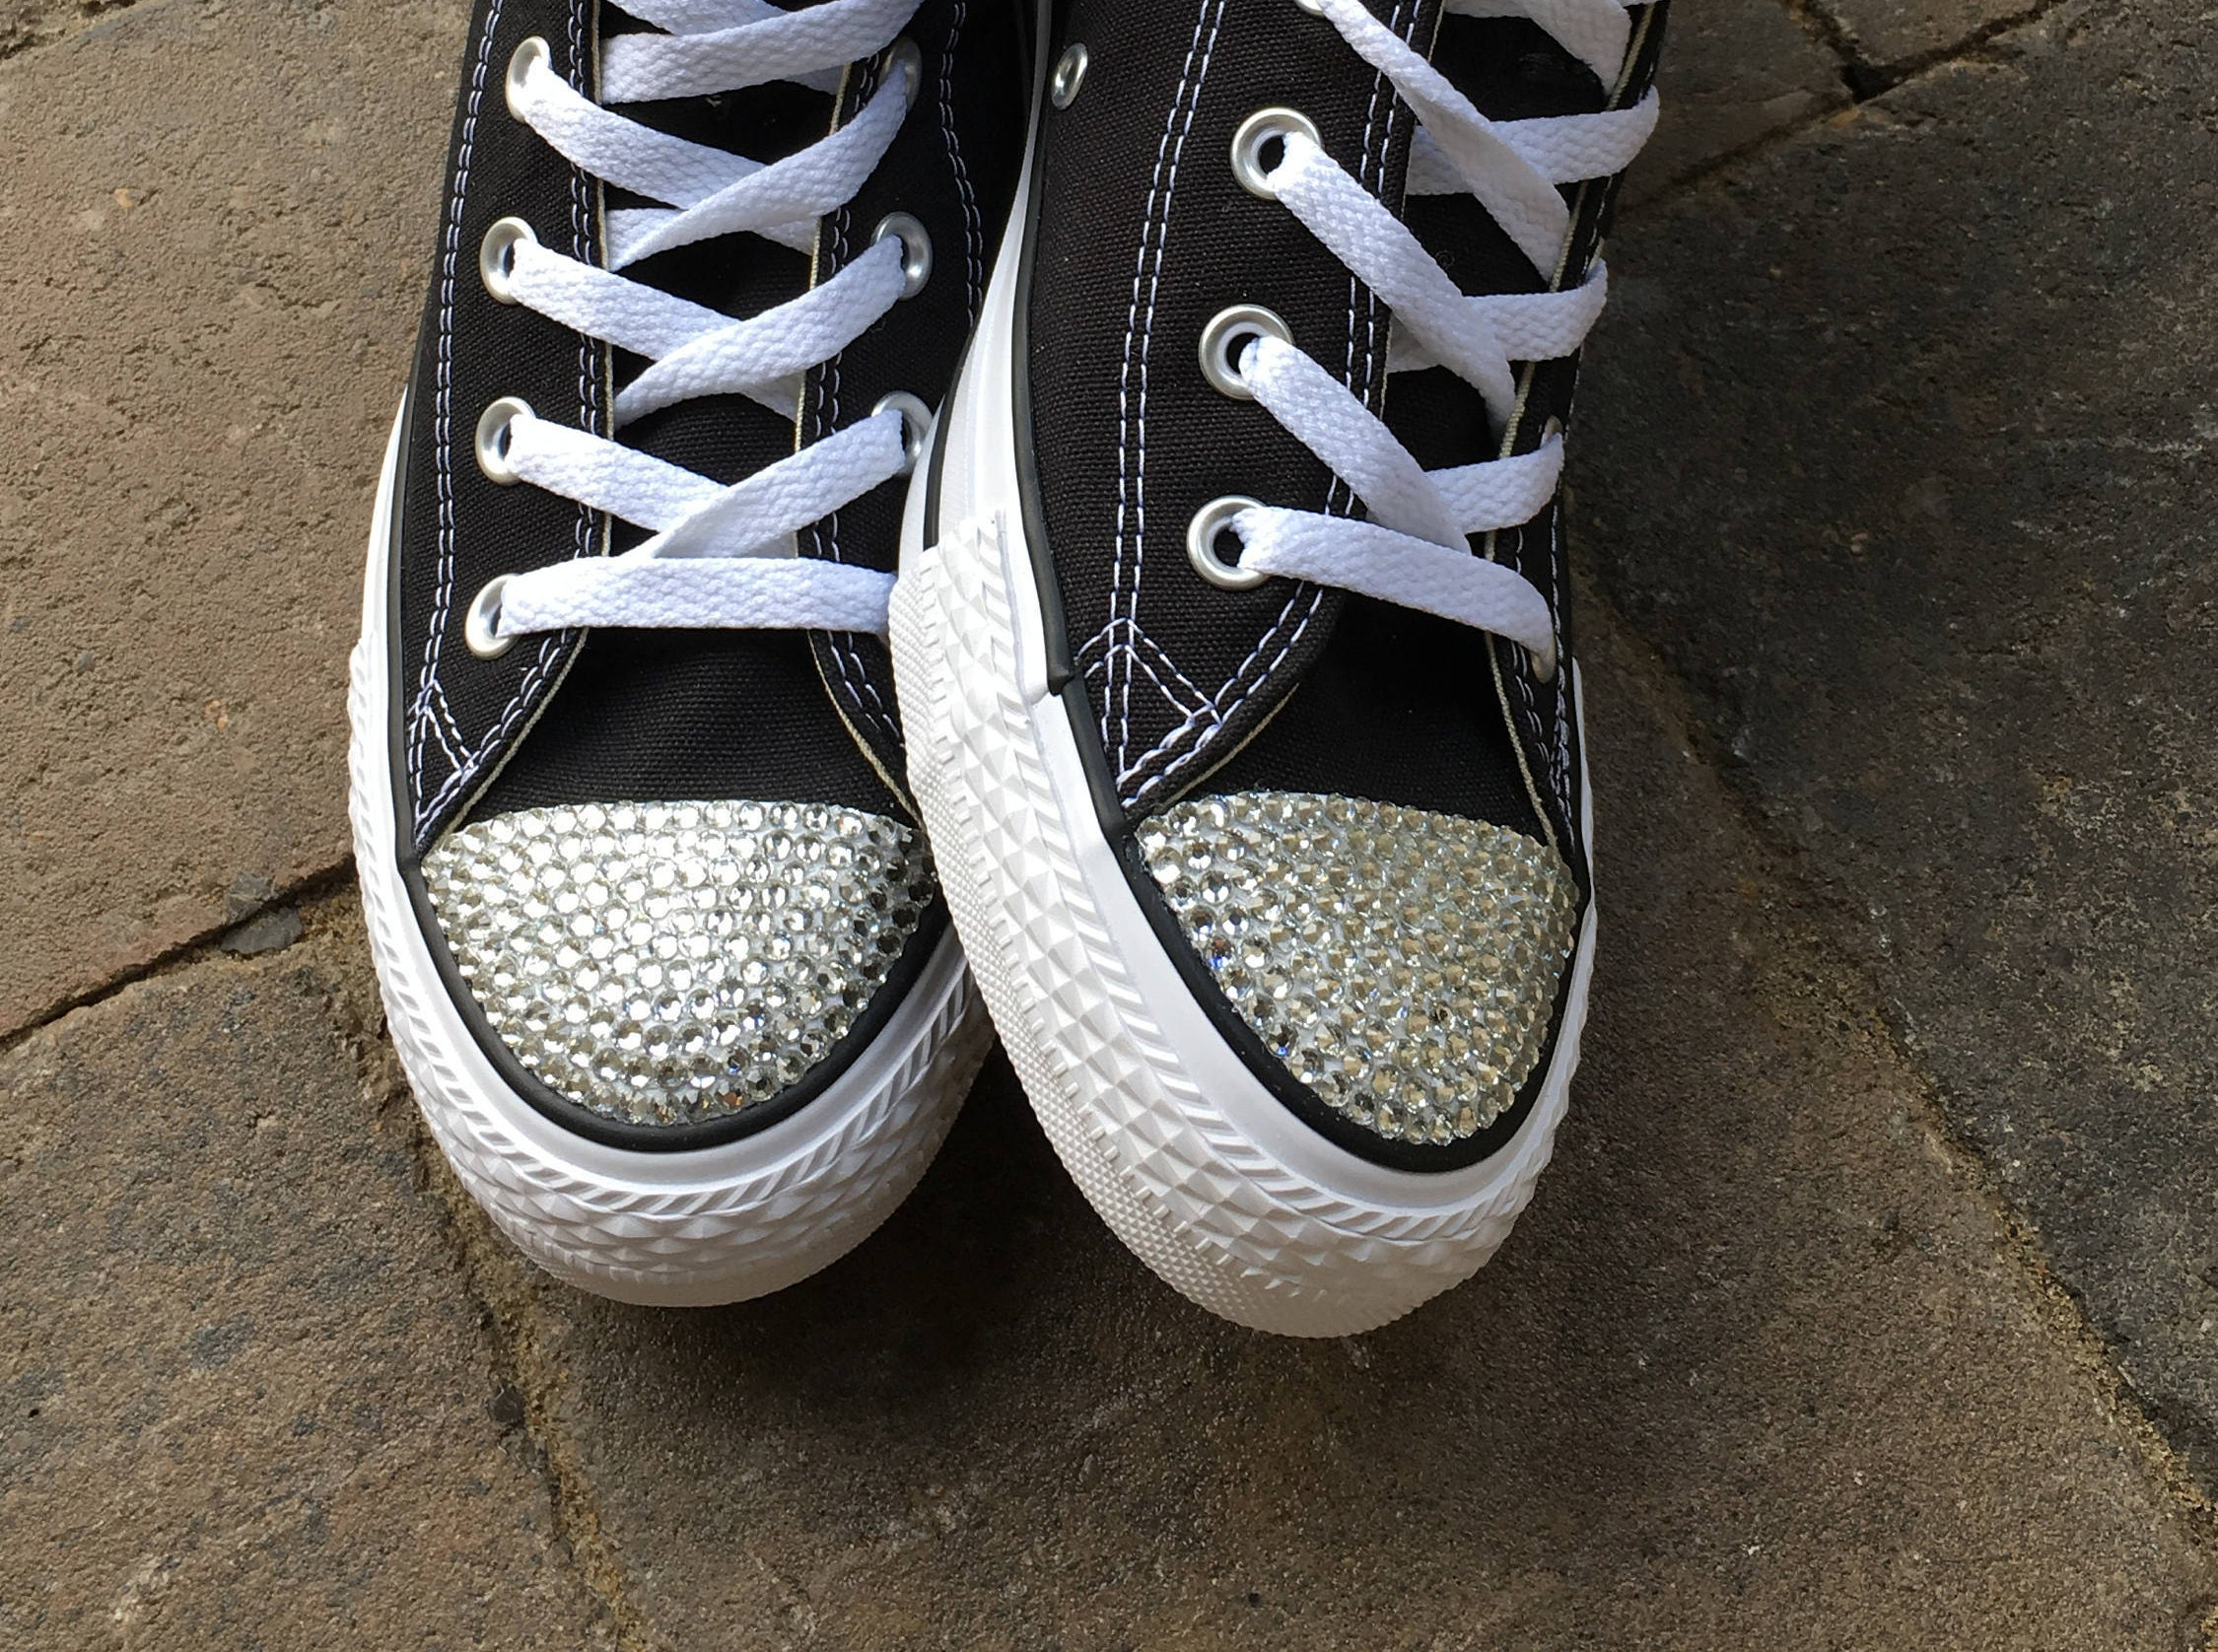 Custom Converse Bedazzled Shoes Clear Rhinestone Bling